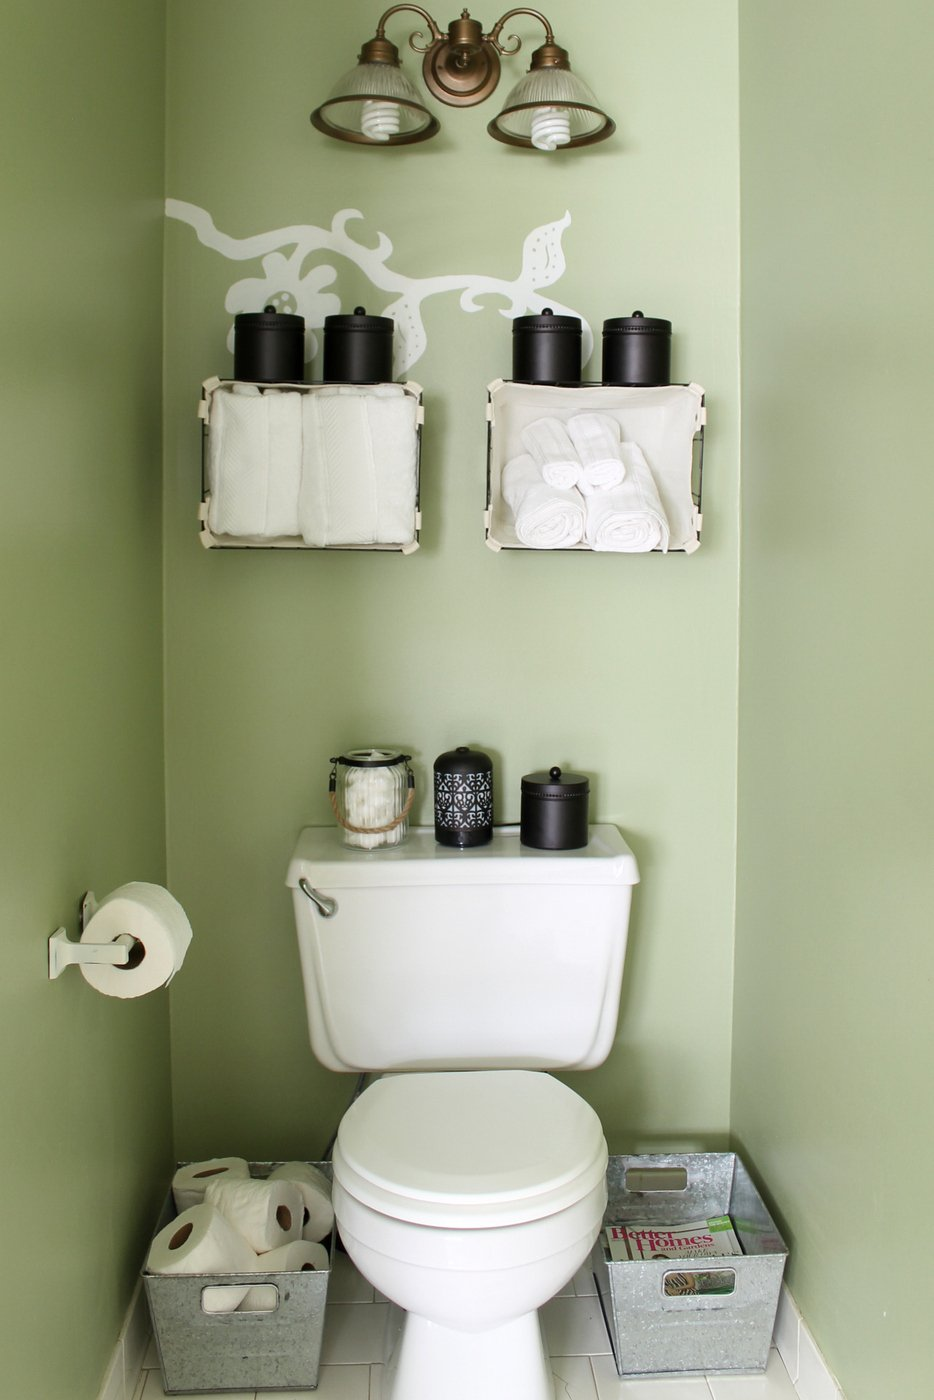 Small bathroom organization ideas the country chic cottage for Bathroom organization ideas